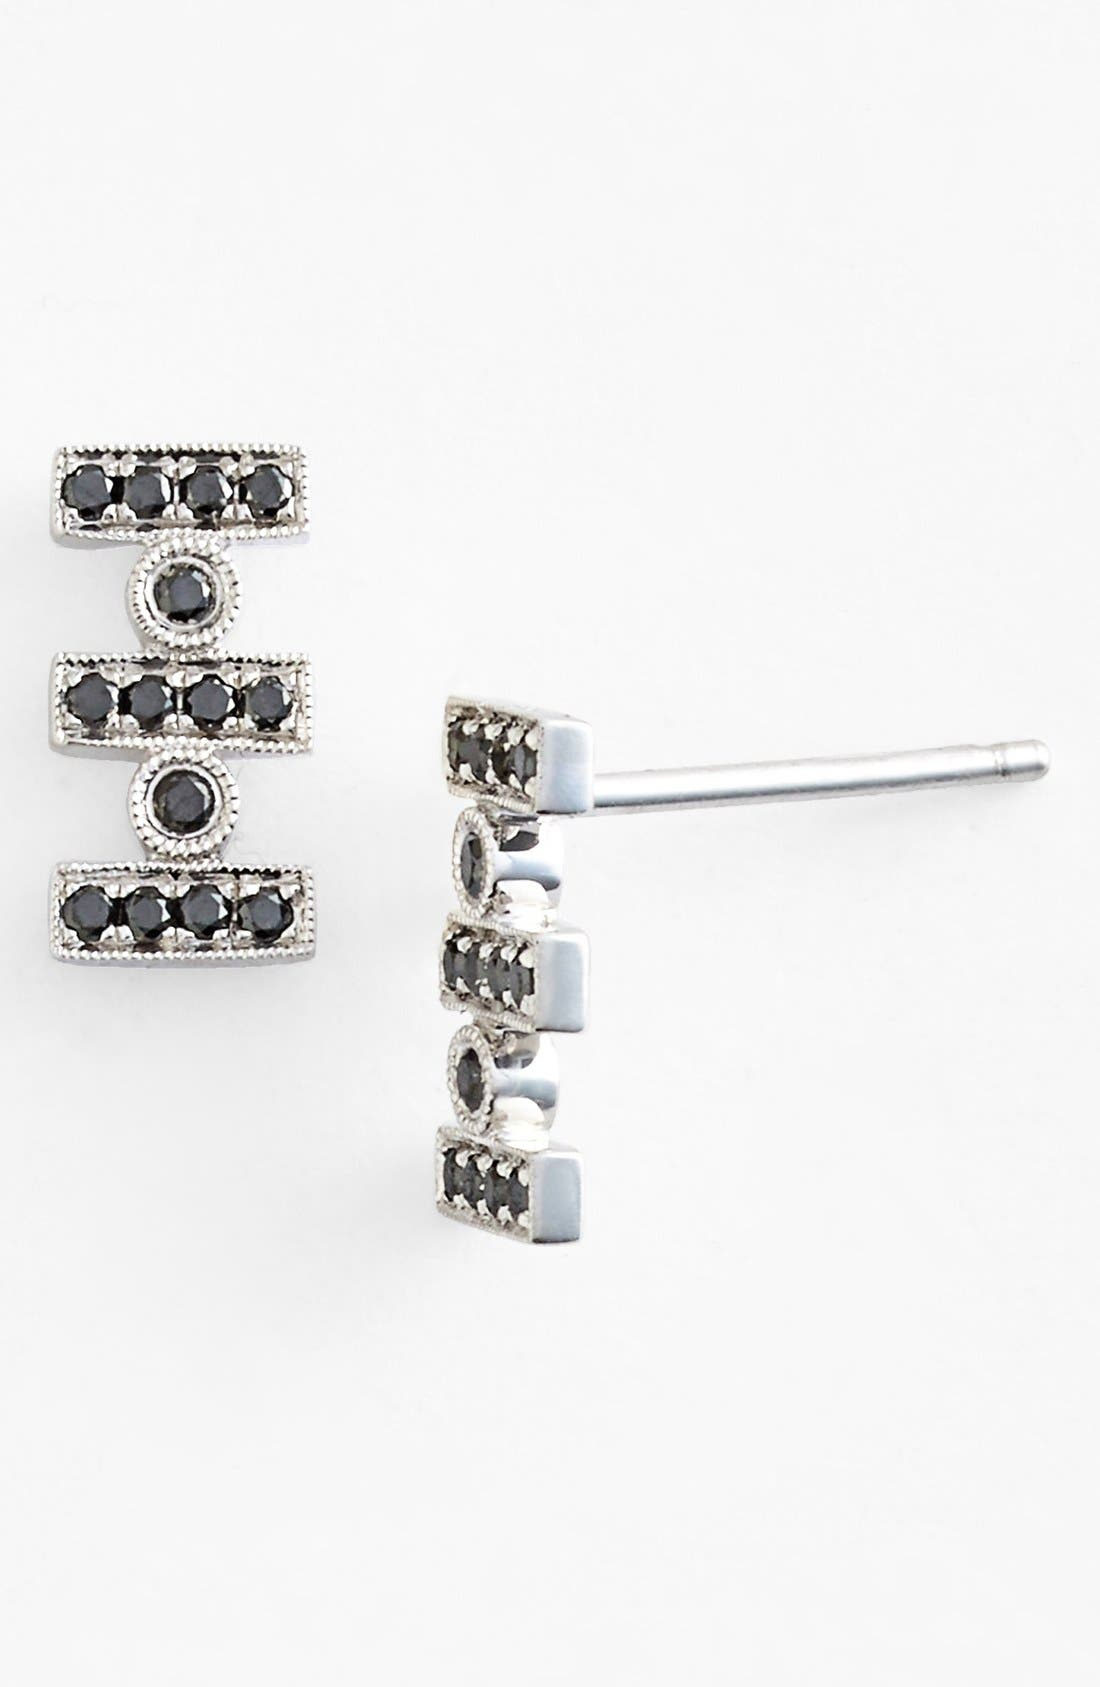 Alternate Image 1 Selected - Dana Rebecca Designs 'Reese' Diamond Stud Earrings